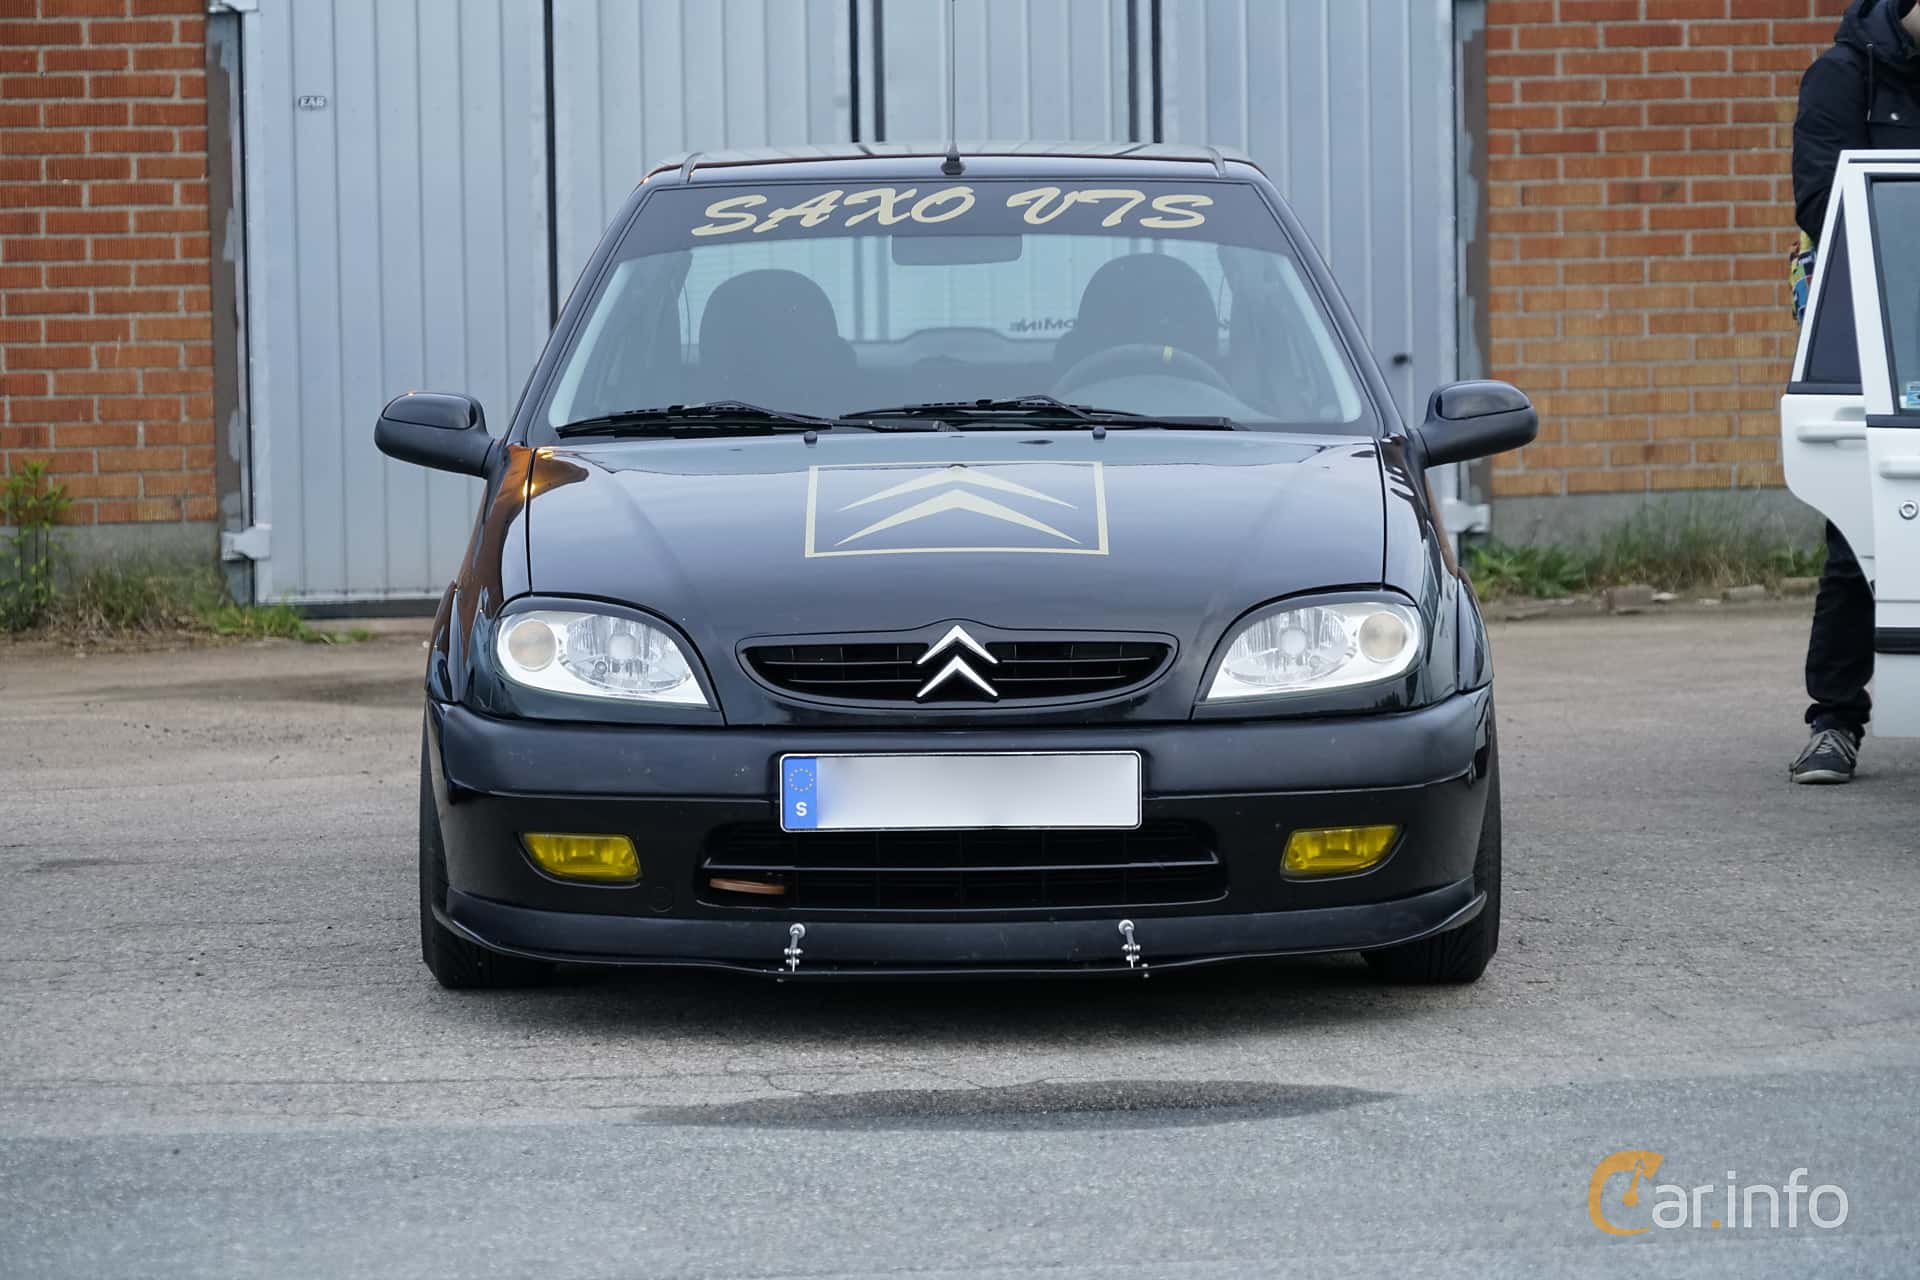 citro n saxo vts 1 6 manual 118hp 2001 rh car info Citroen DS5 Citroen Saxo 1.1I